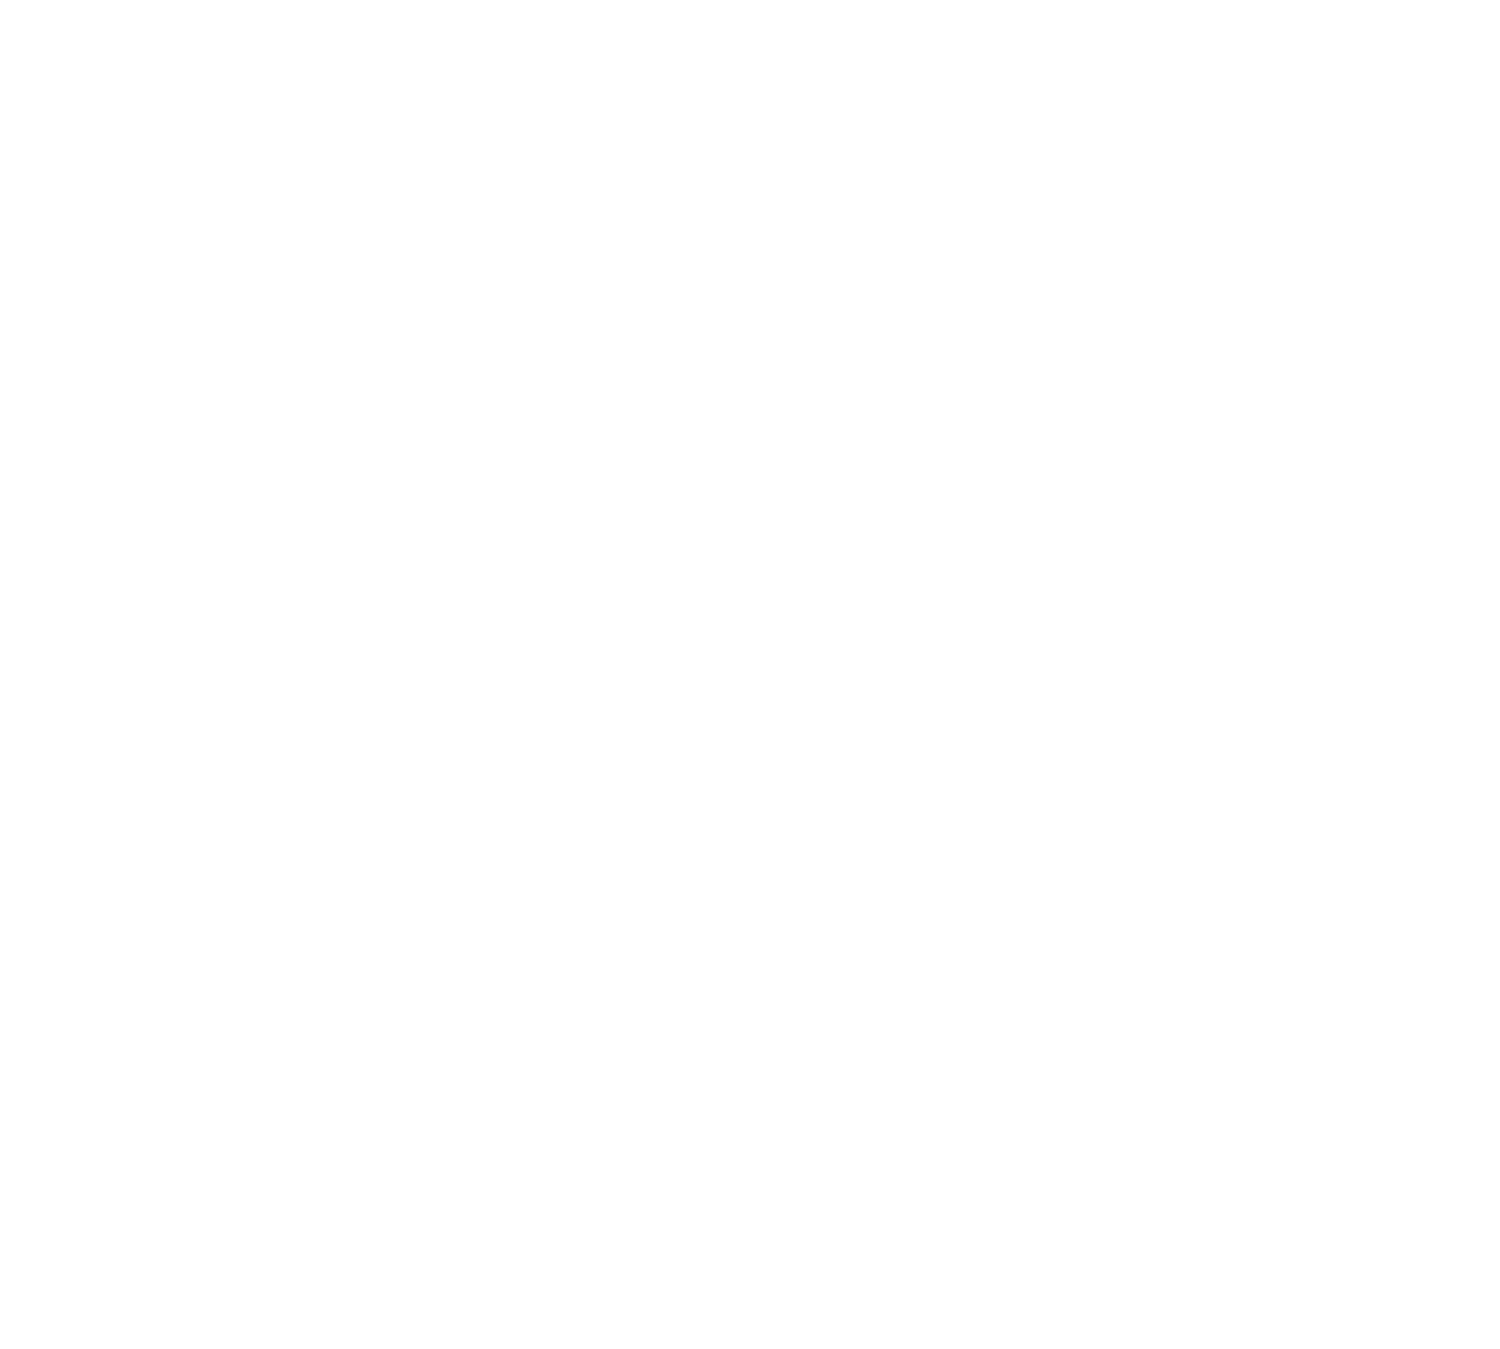 THE EVAN FUND